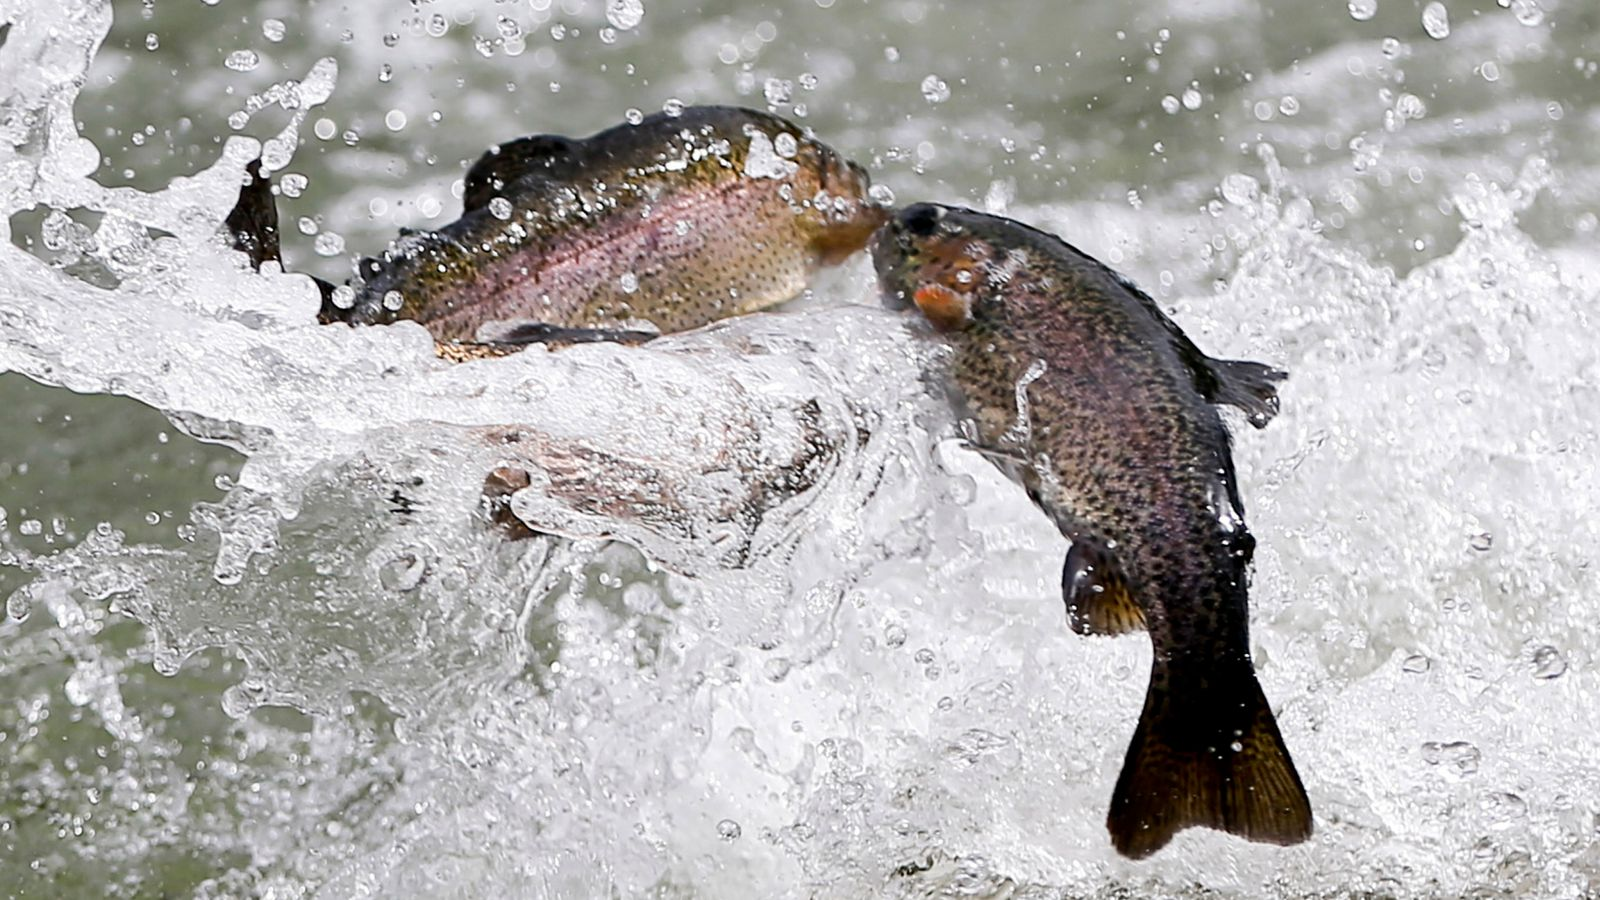 Scientists got 60 trout addicted to methamphetamine